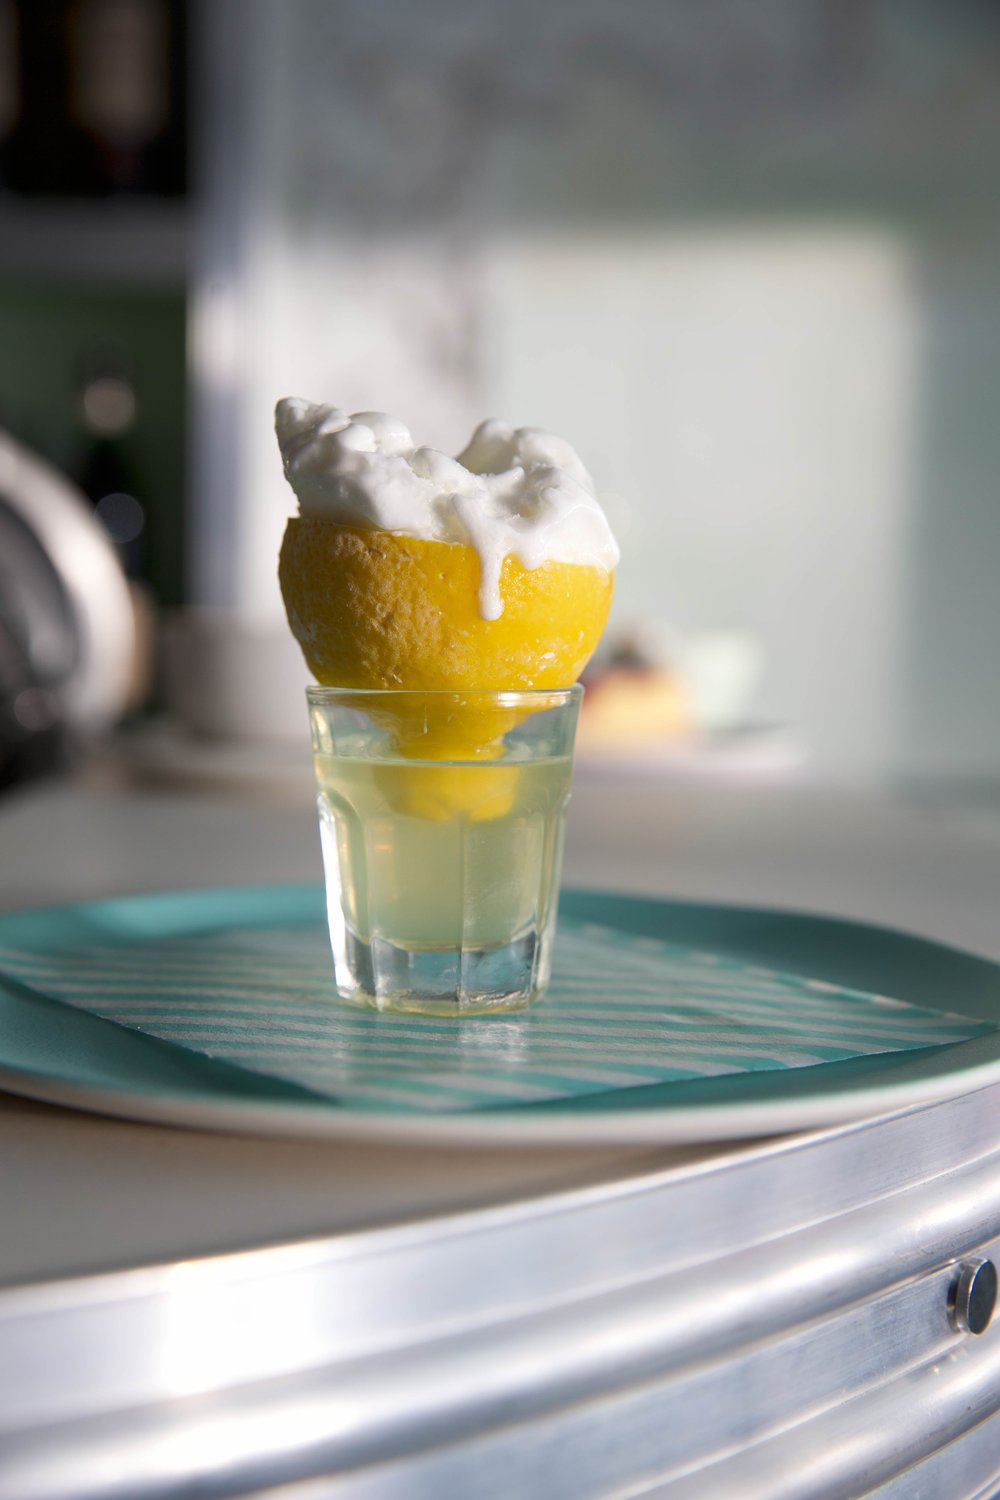 I love this dish, lemon sorbet served on a glass of lemoncello; such a wonderful simple execution